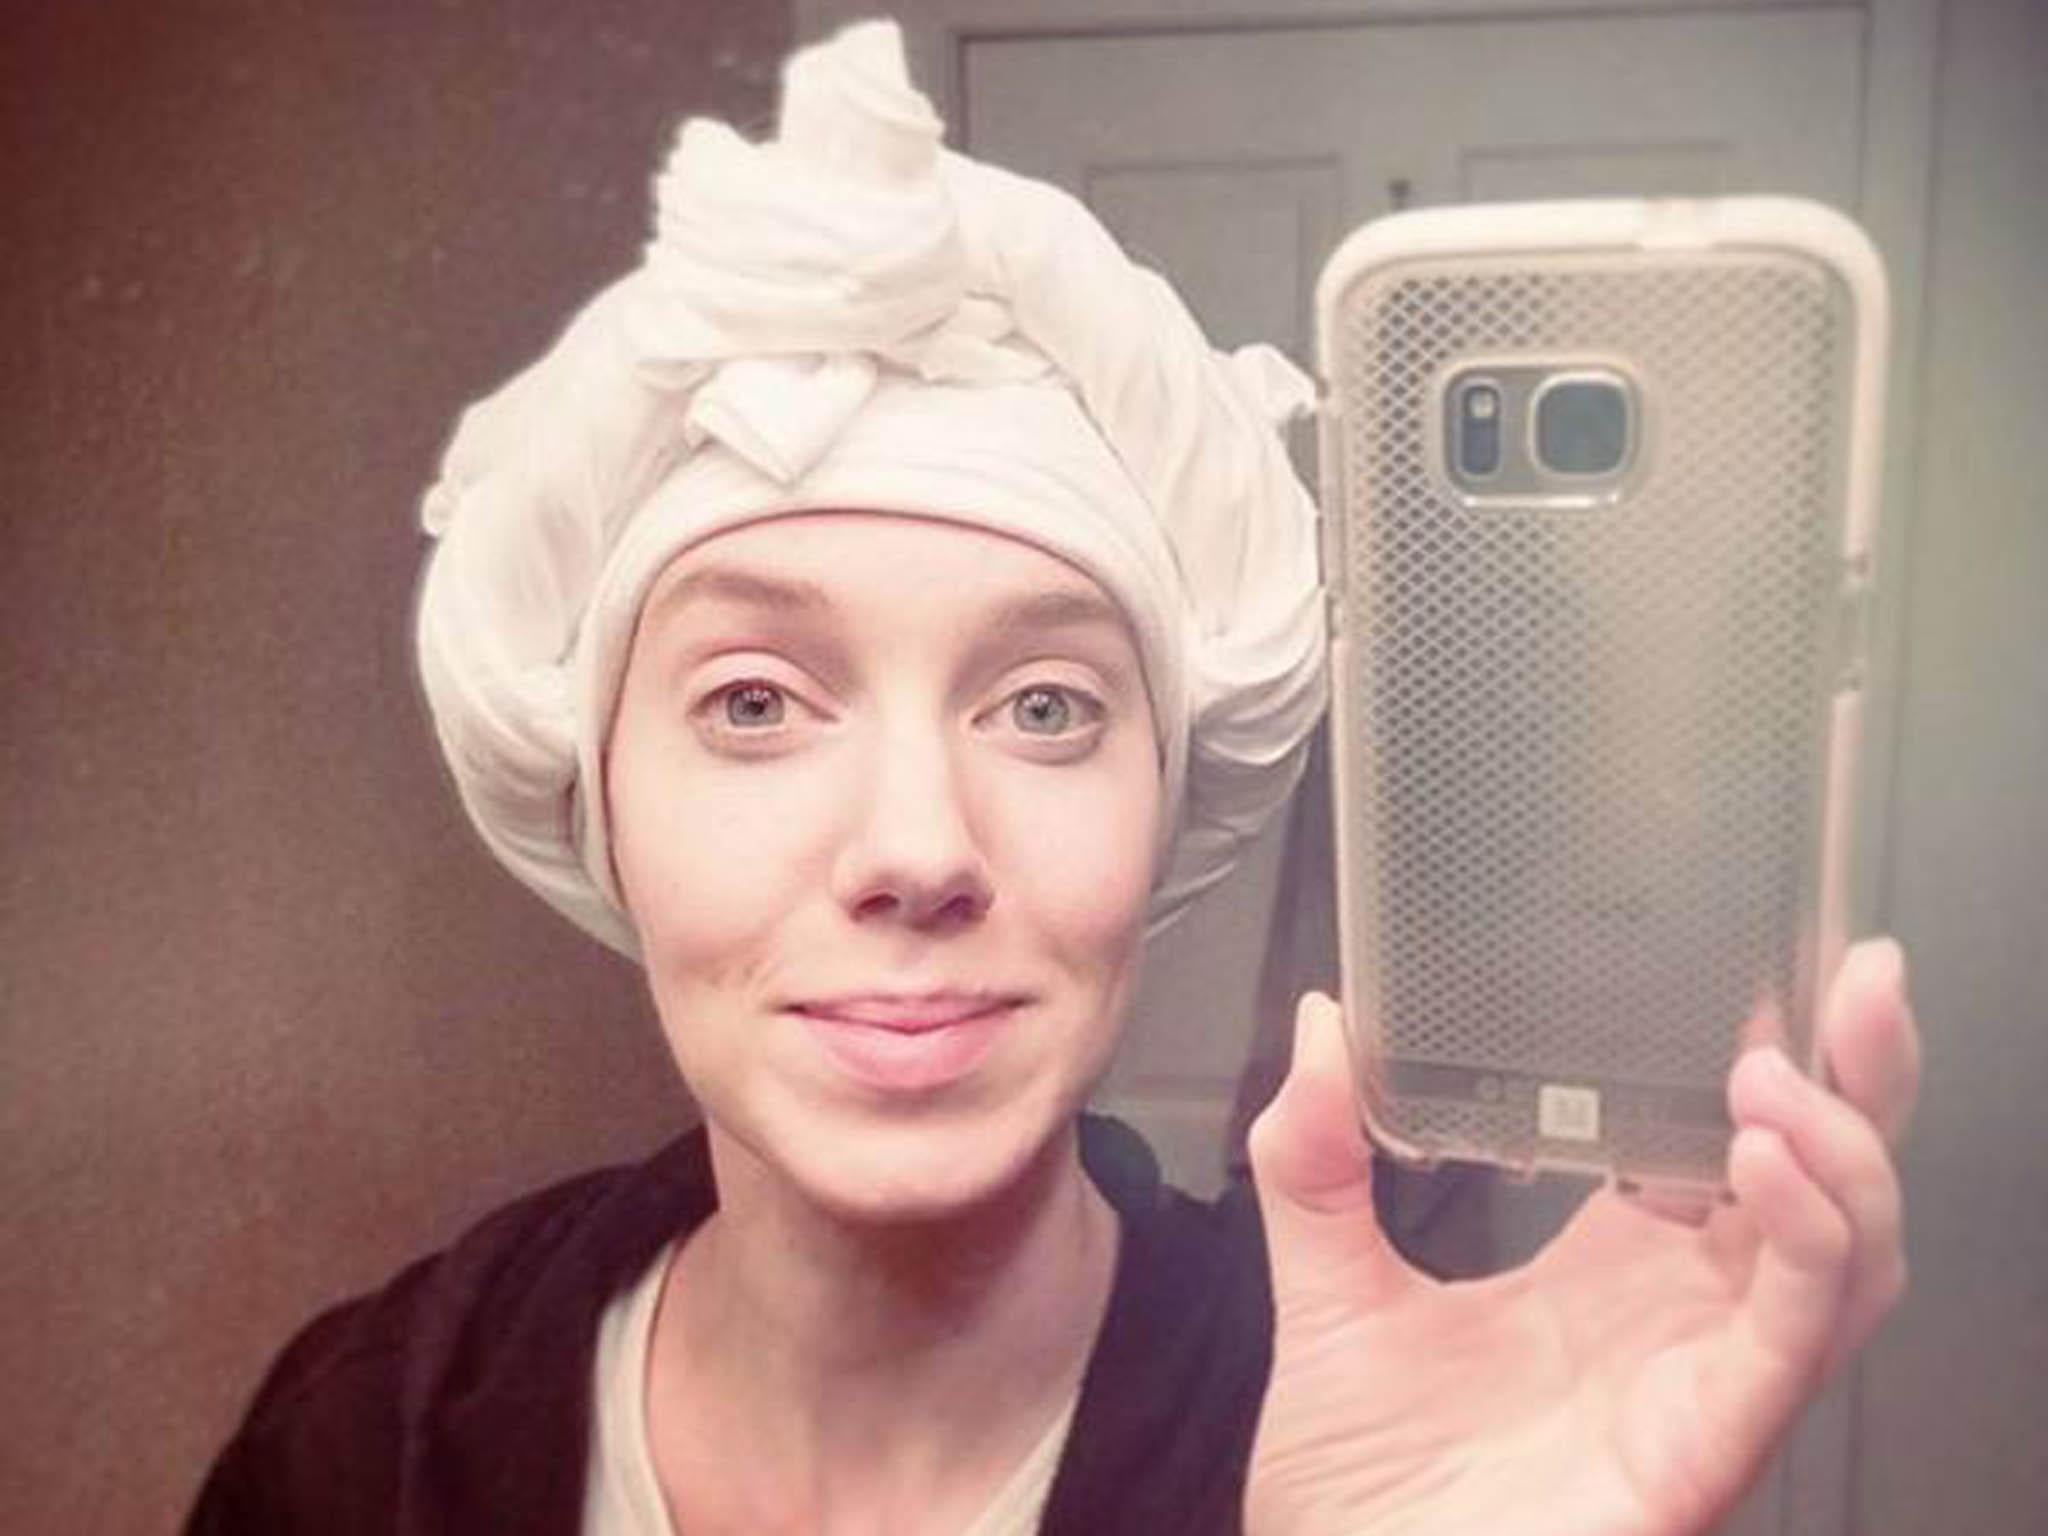 How to dry your hair without heat damage: Plop it (yes, really)